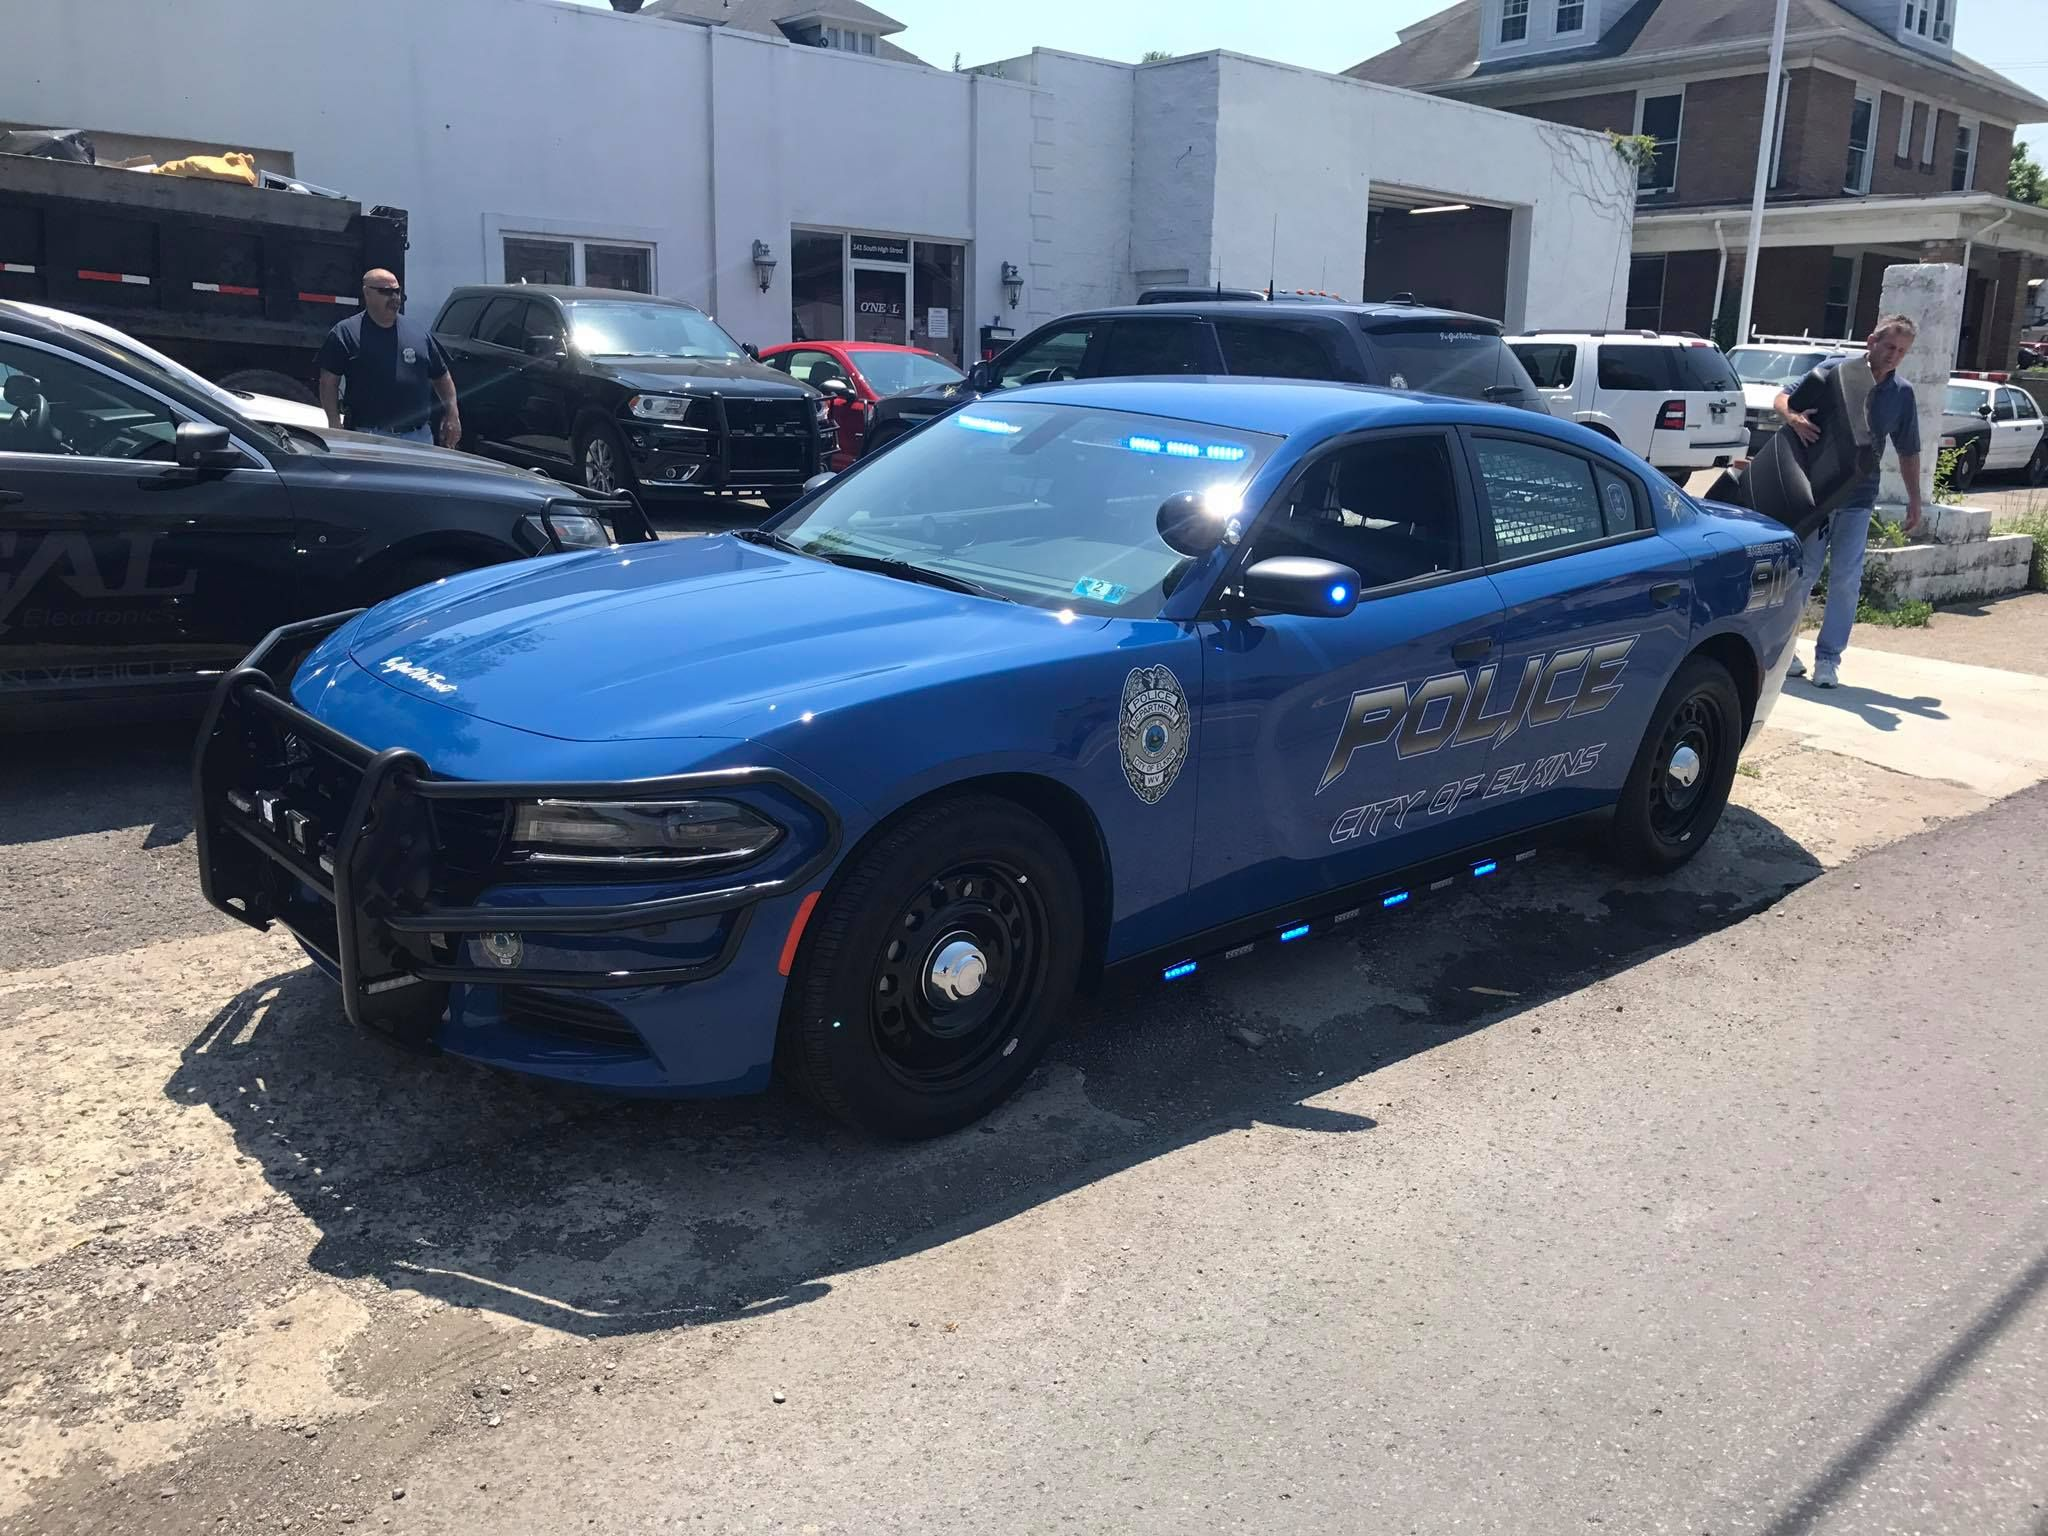 Randolph County West Virginia Elkins City Police Dodge Charger Police Cars Us Police Car Emergency Vehicles